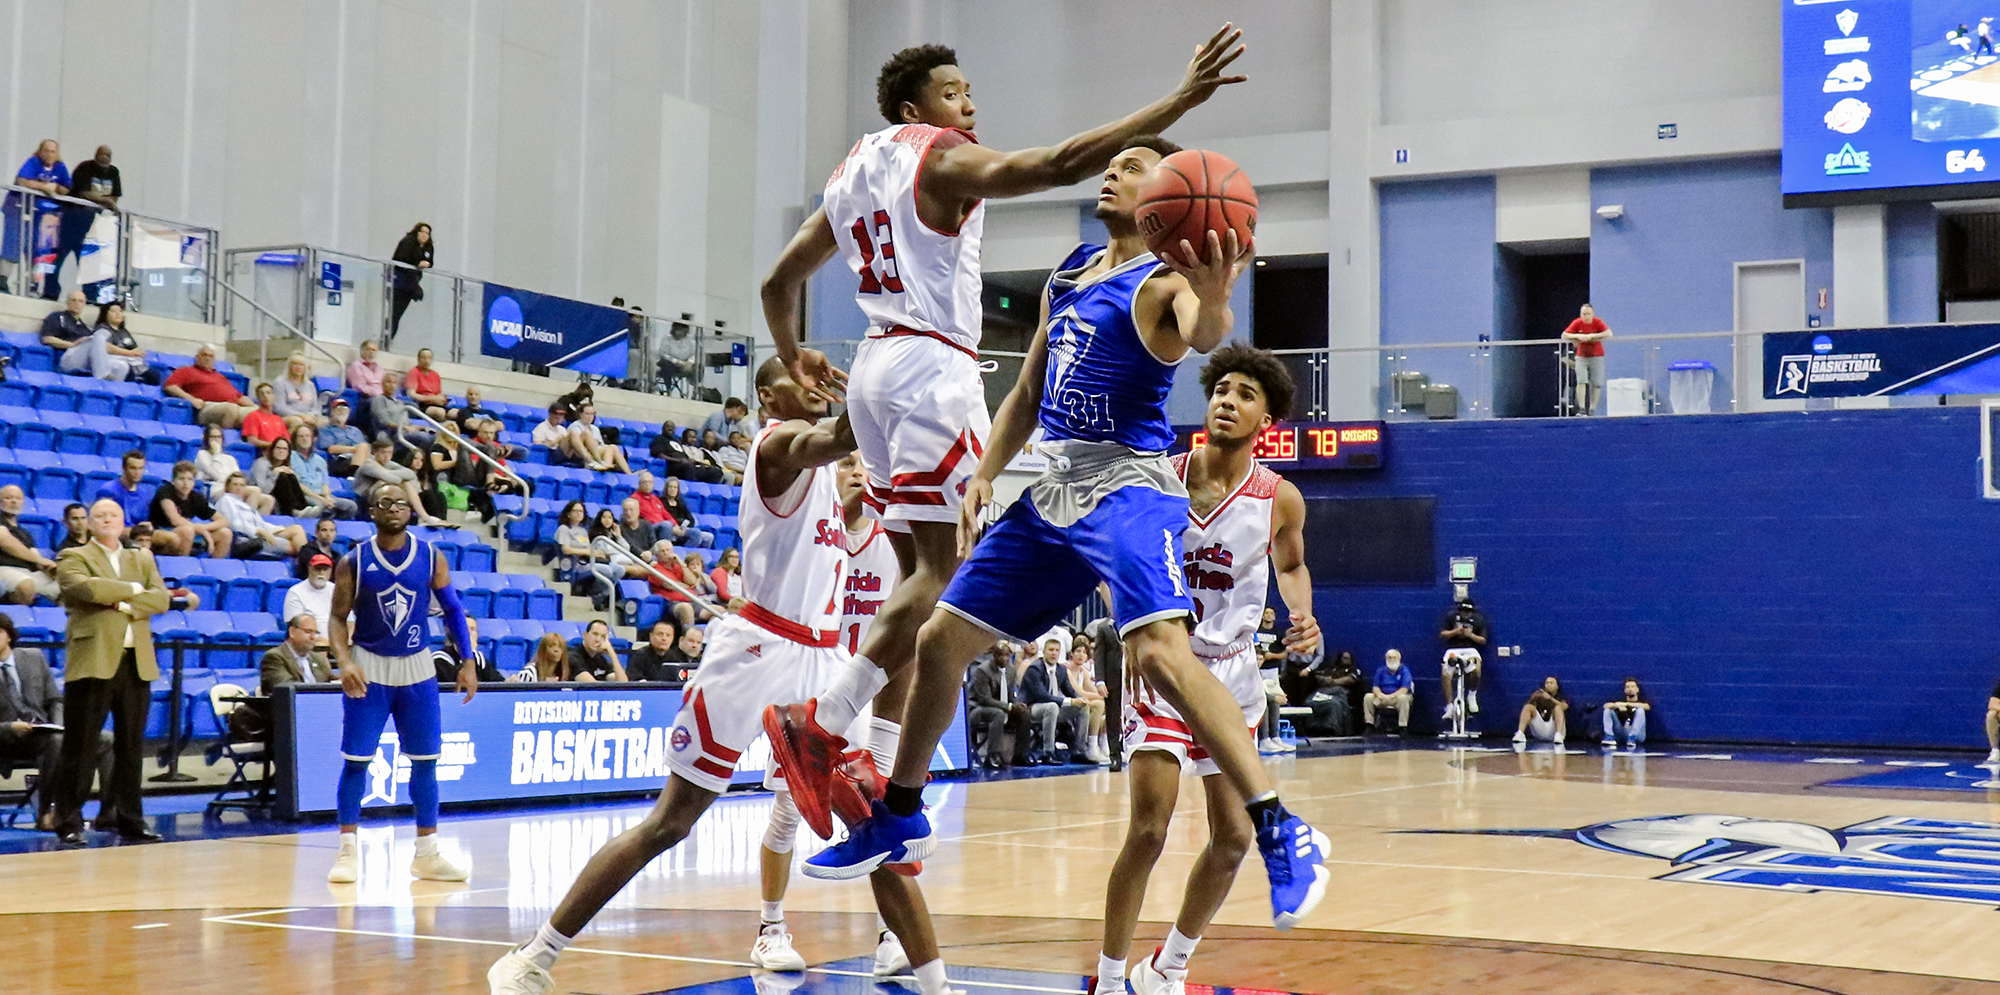 Sweet, Sweet Revenge! No. 18 Men's Basketball Clinches NCAA South Region Championship Berth